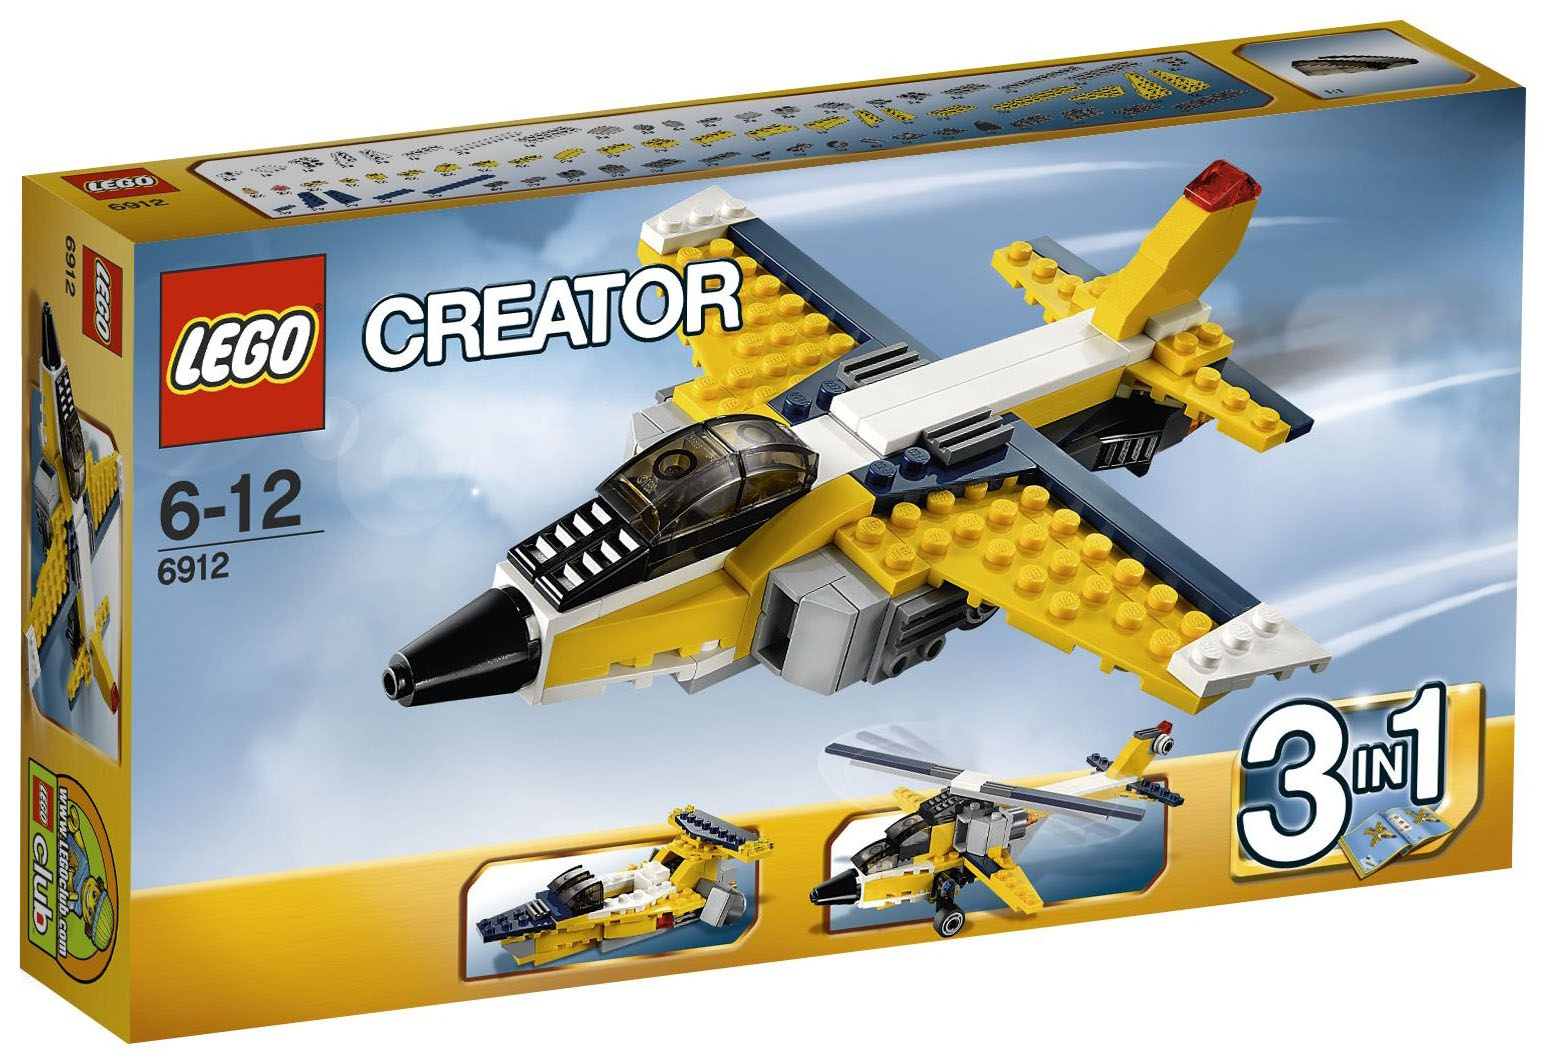 lego creator 6912 pas cher l 39 avion r action. Black Bedroom Furniture Sets. Home Design Ideas